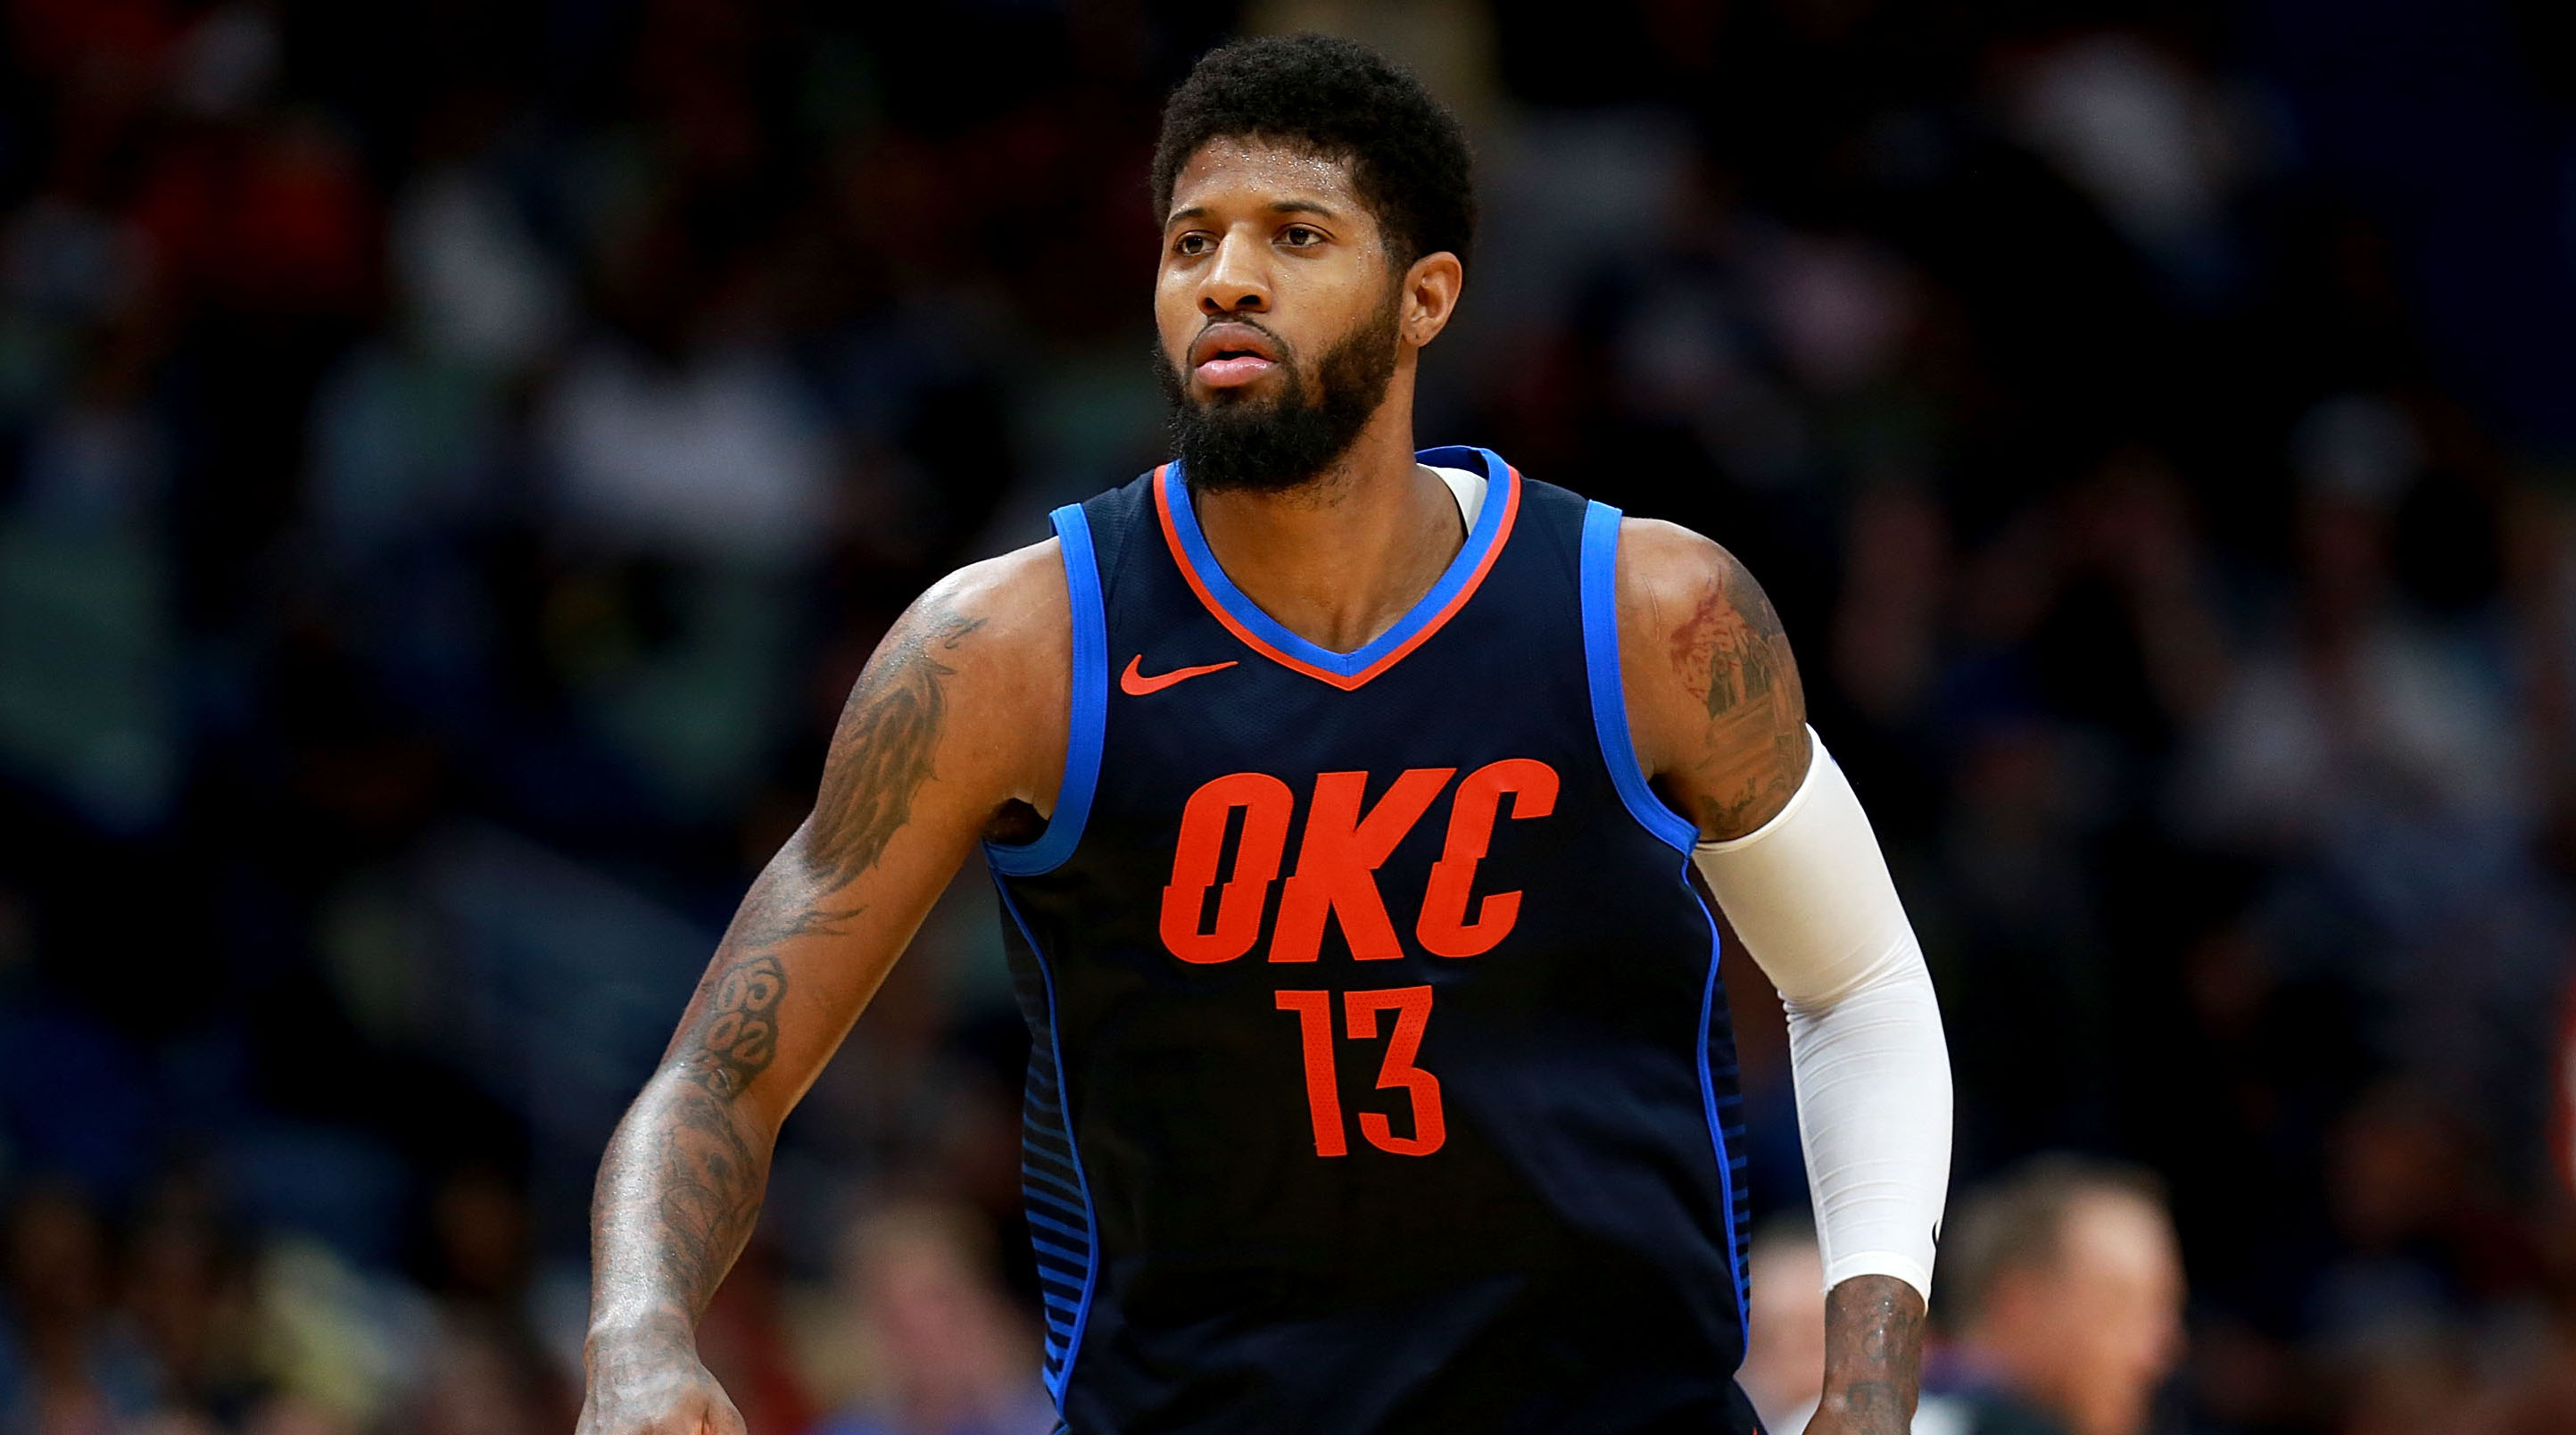 Paul George: Paul George Returns To Thunder On 4-Year, $137 Million